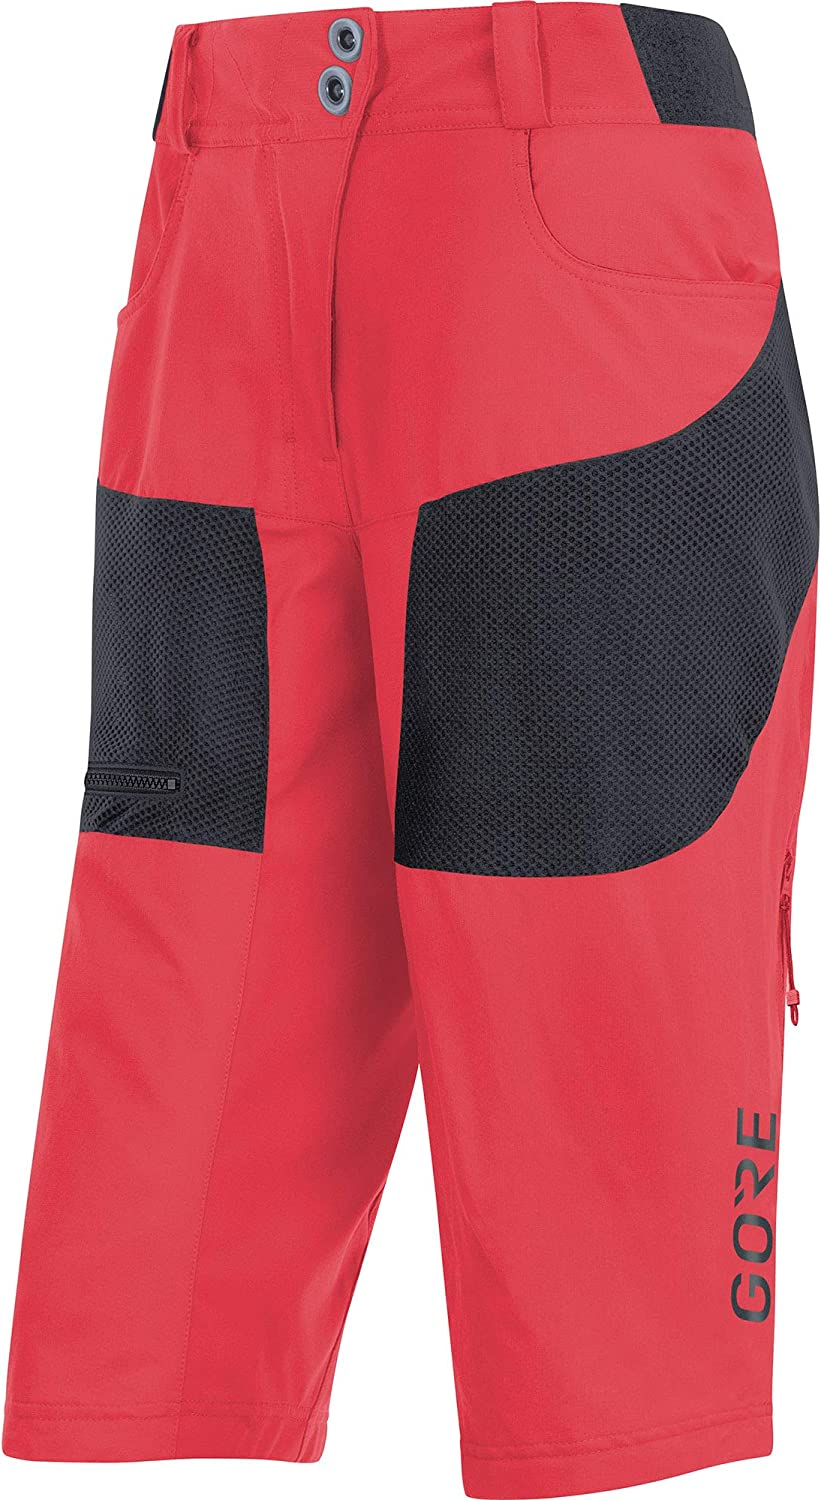 Jacksonville Mall GORE WEAR C5 safety Women's ShortS Cycling Mountain All